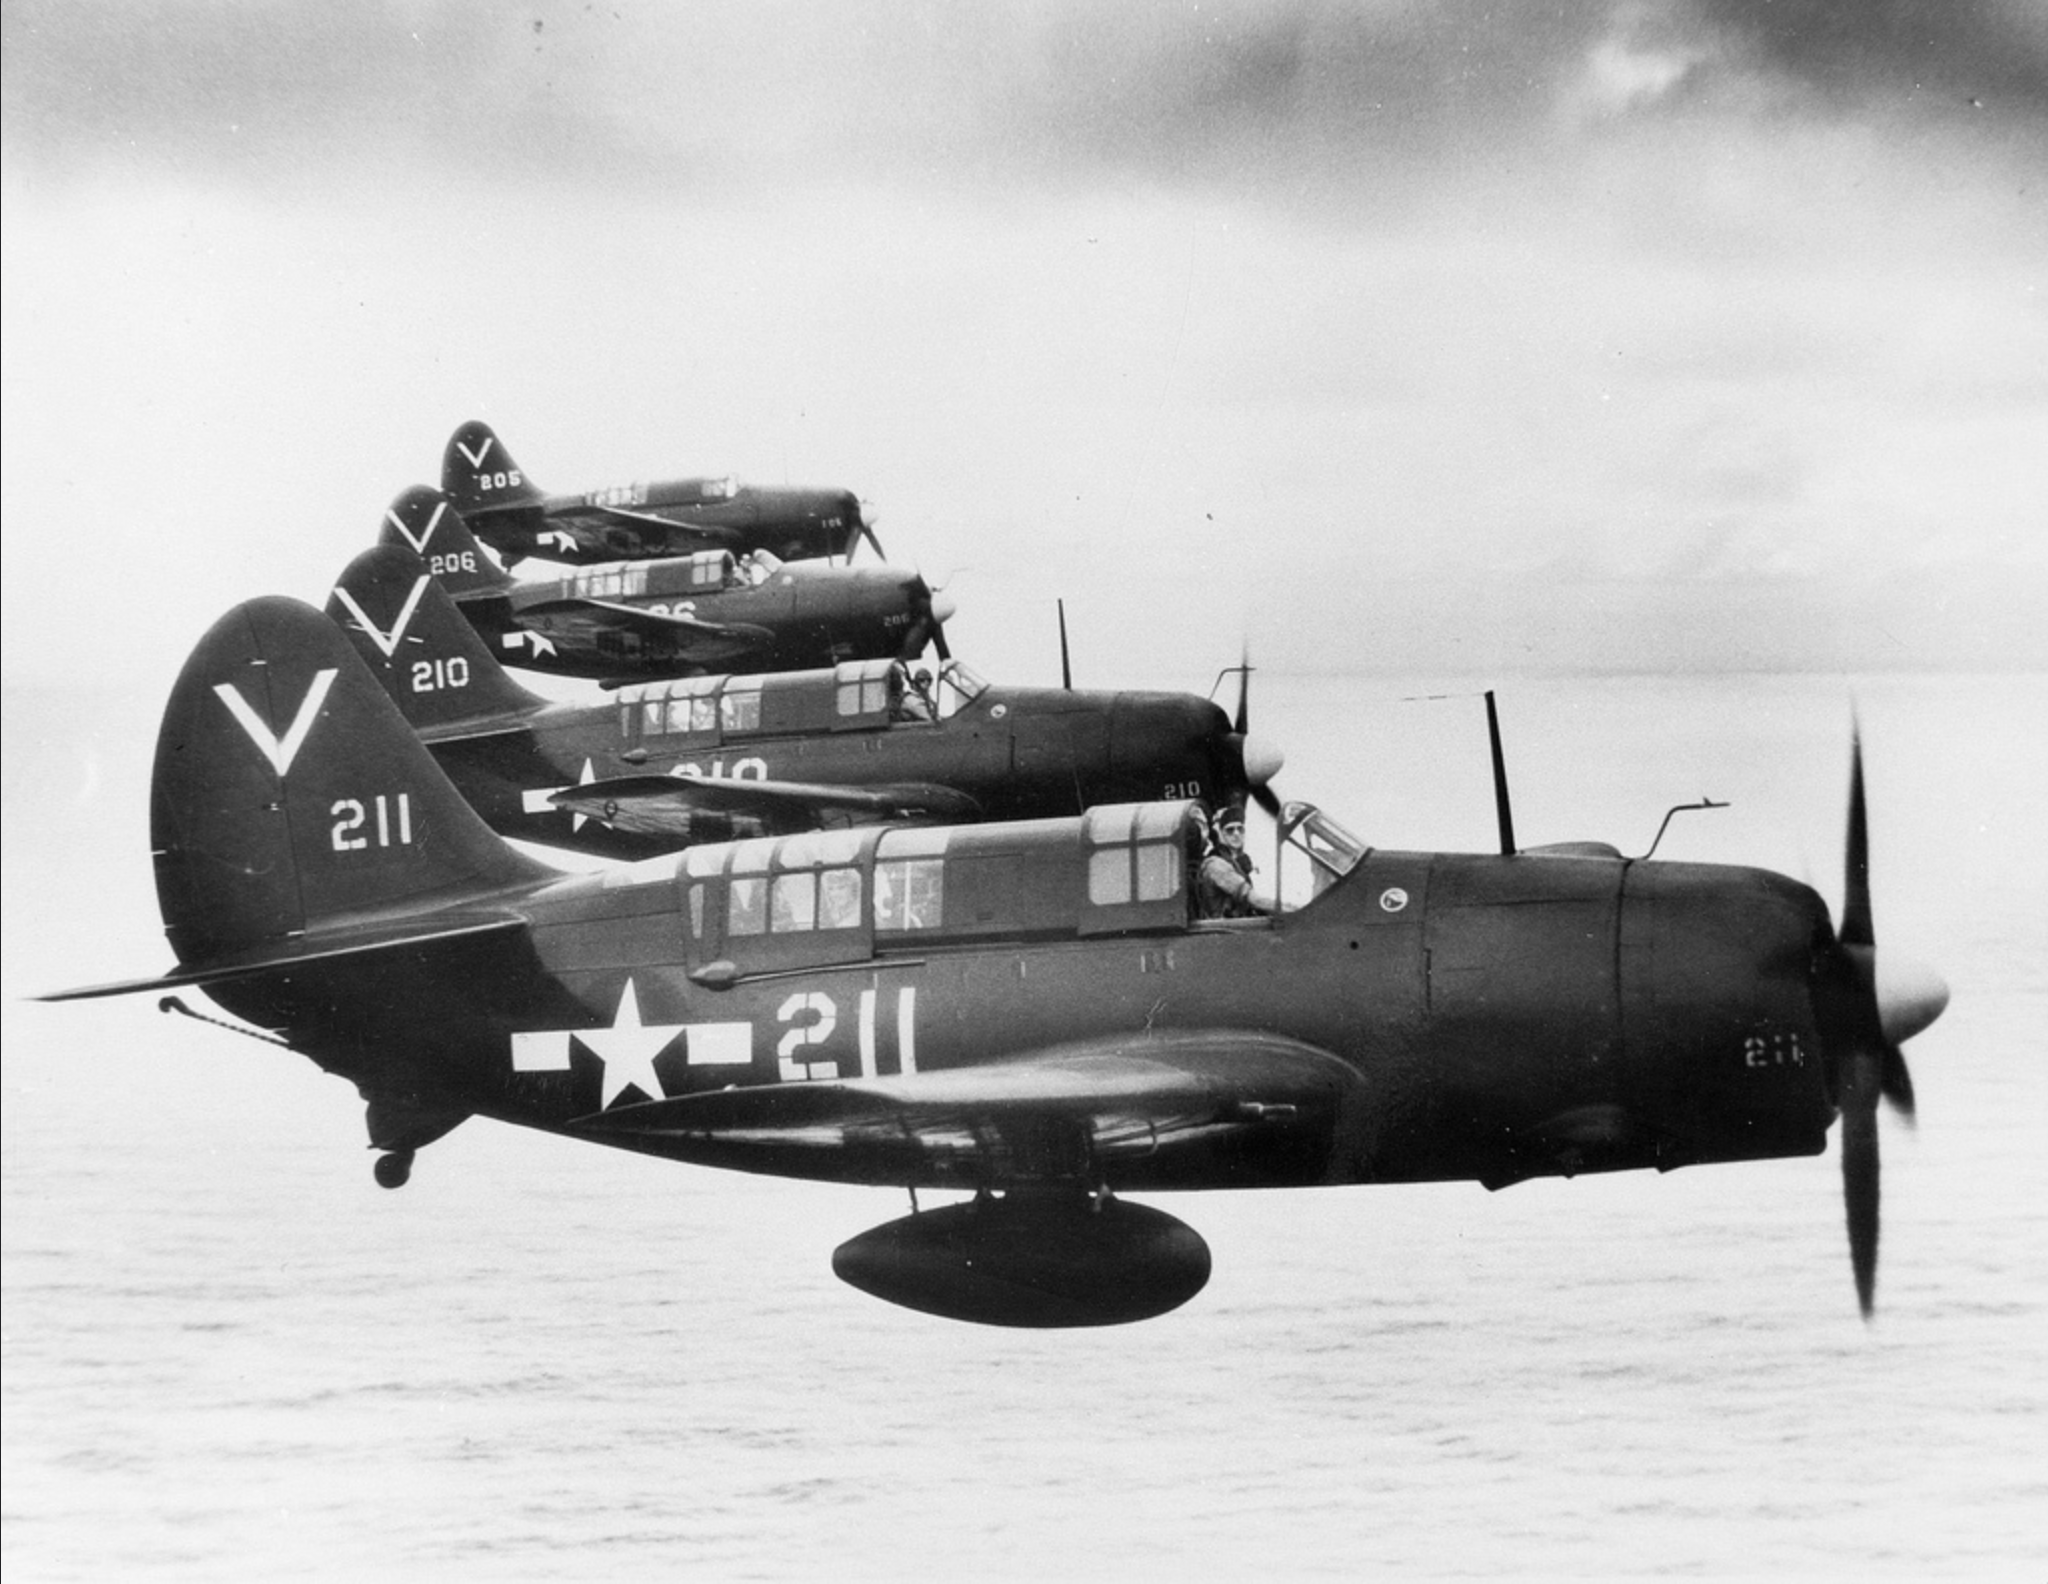 On the 28 July, 1945, Porter and Brissette flew SB2C Helldiver #210, second from the bottom.